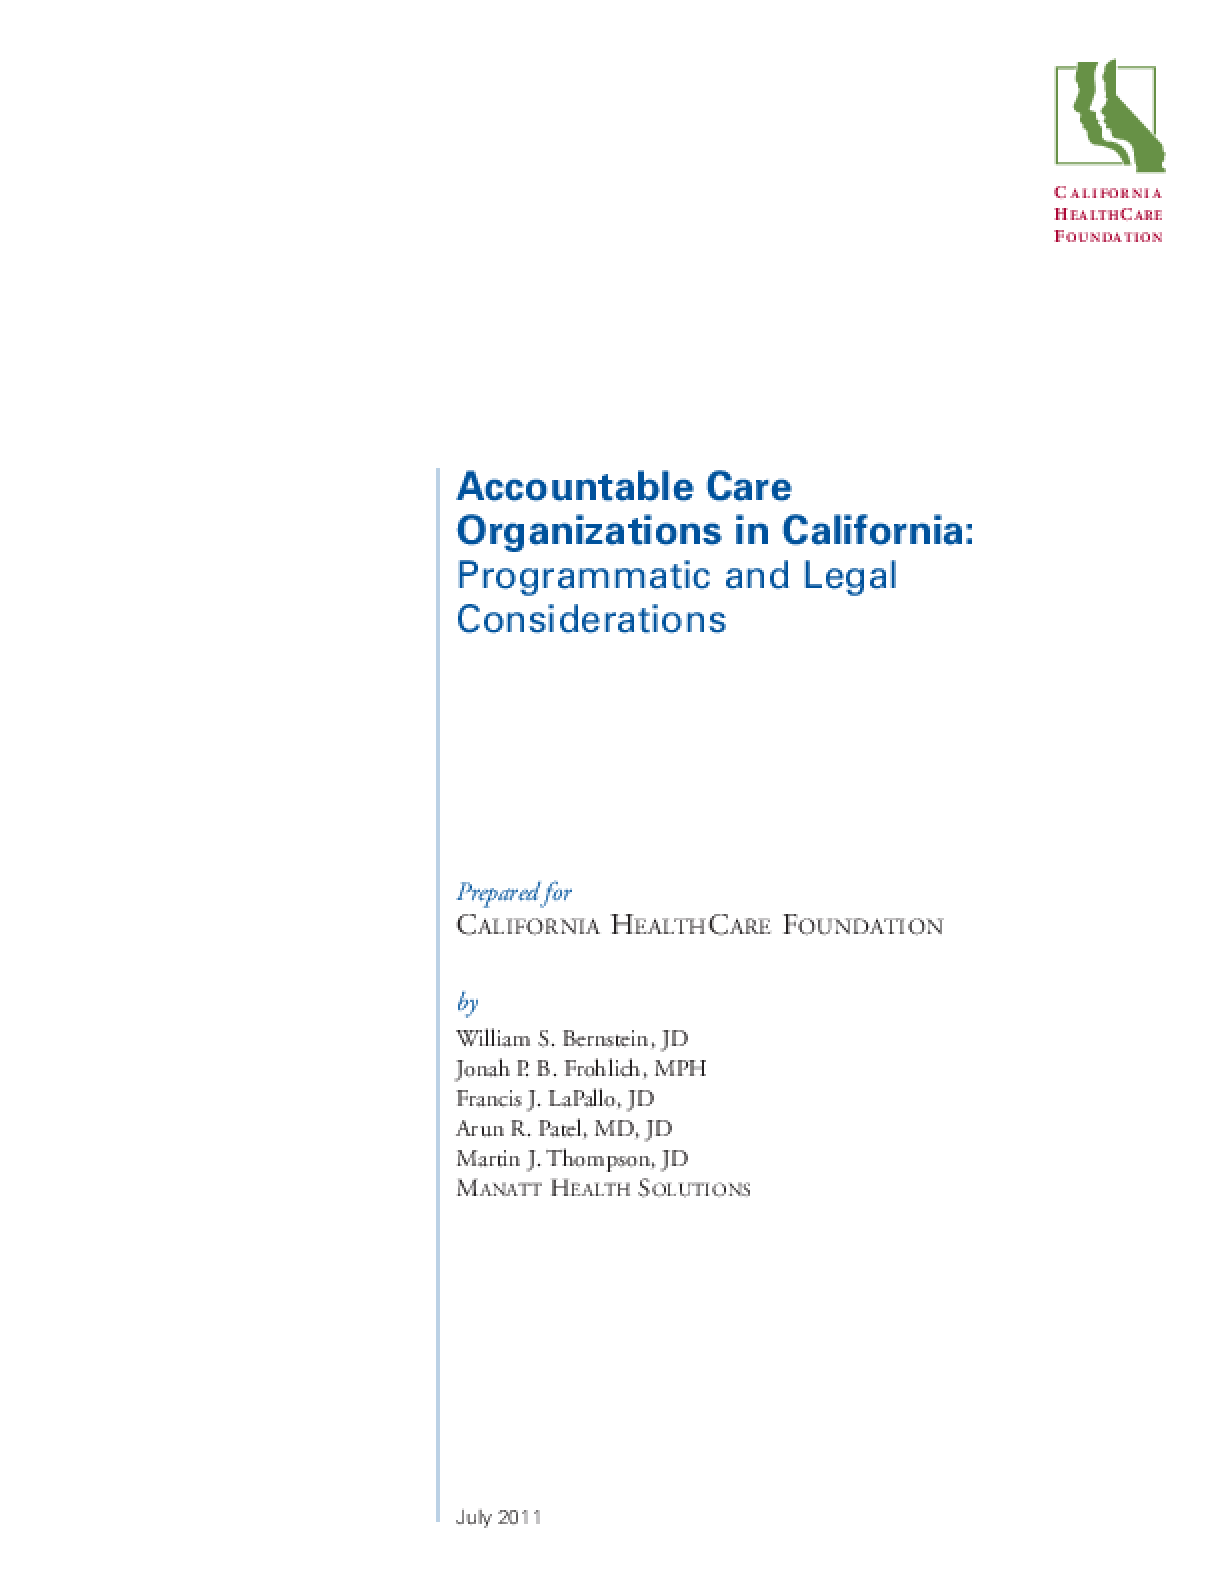 Accountable Care Organizations in California: Programmatic and Legal Considerations